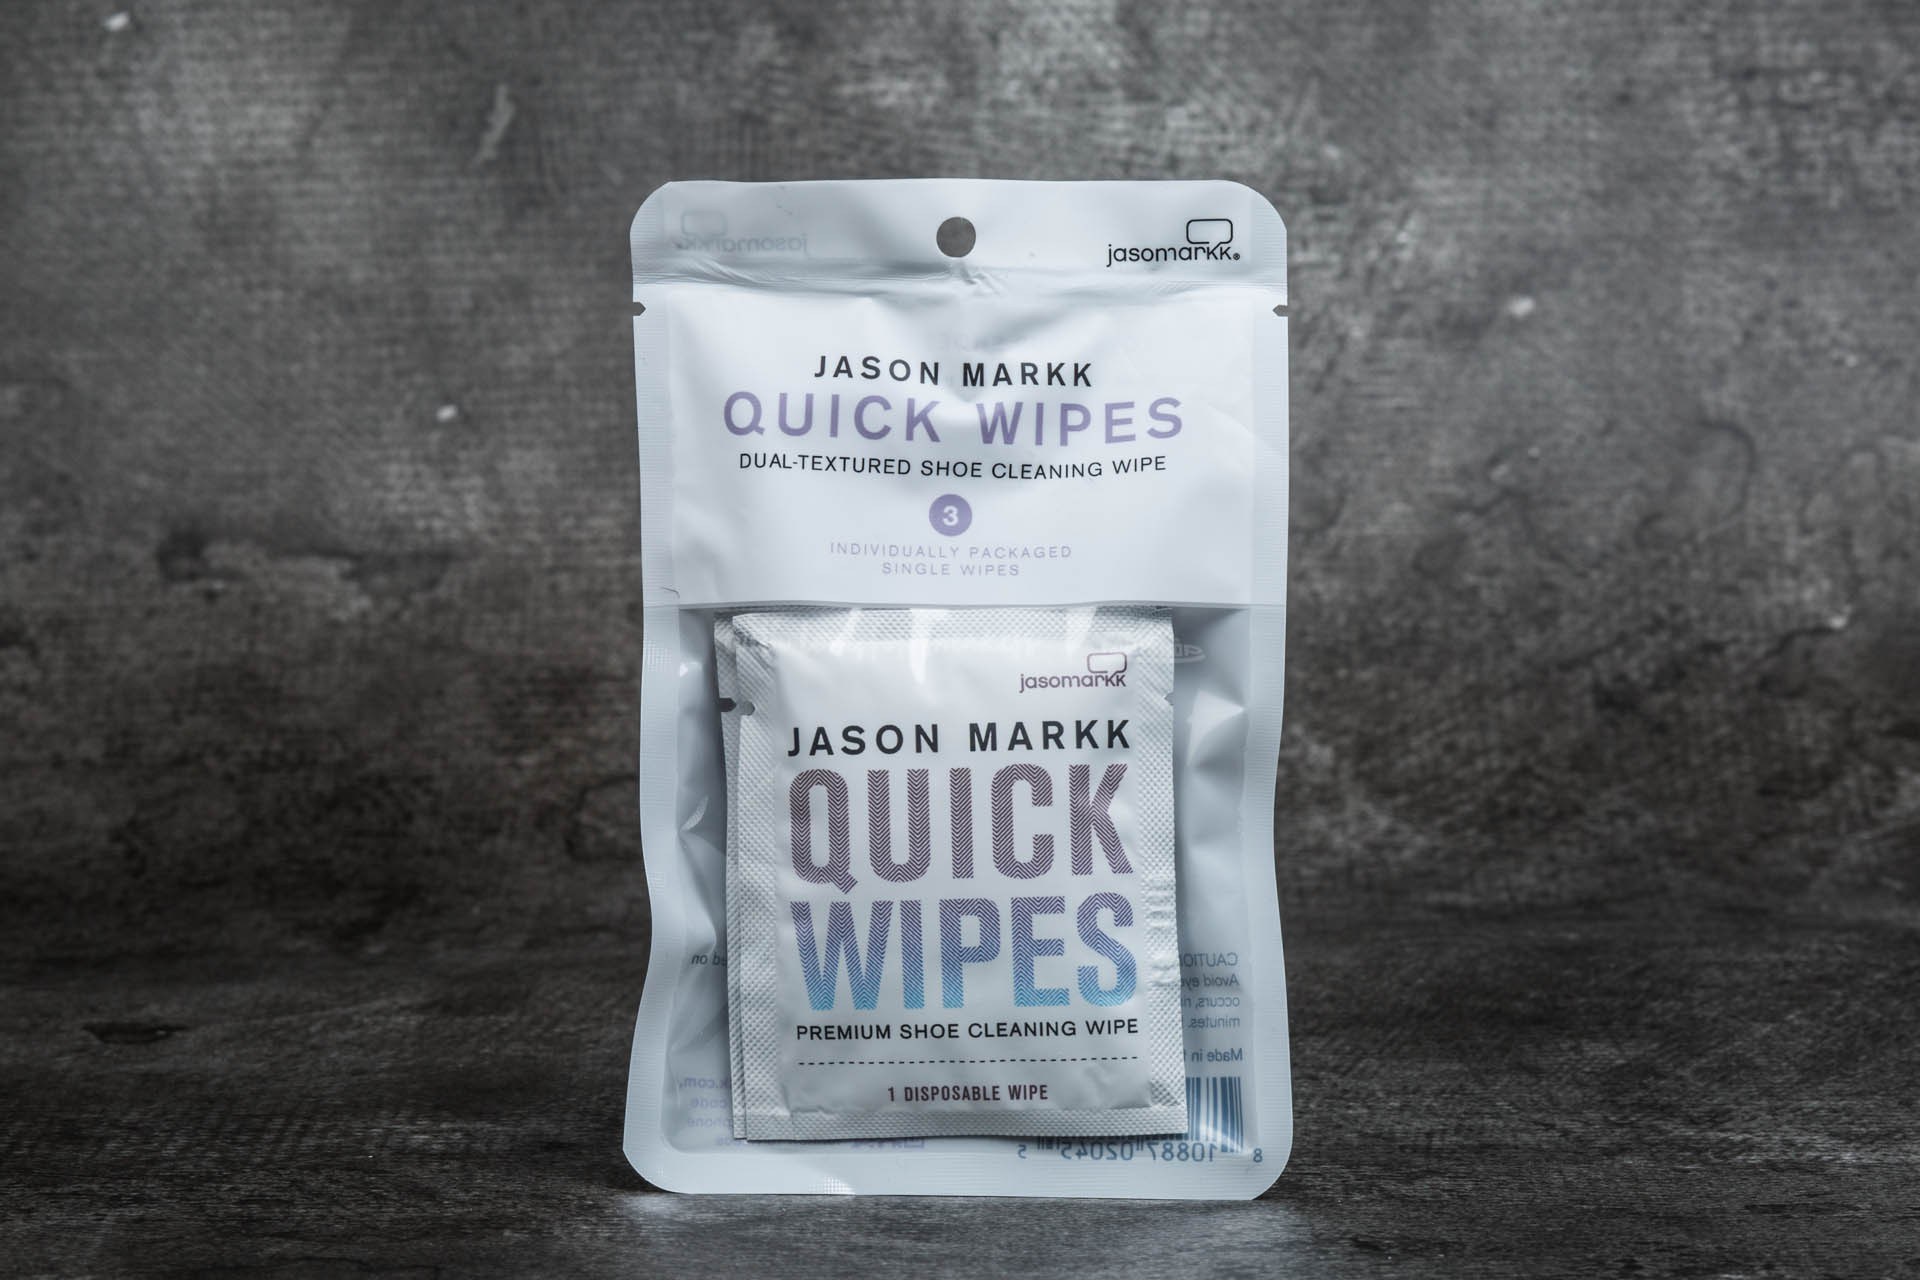 Jason Markk Quick Wipes – Pack of 3 Footshop – FR